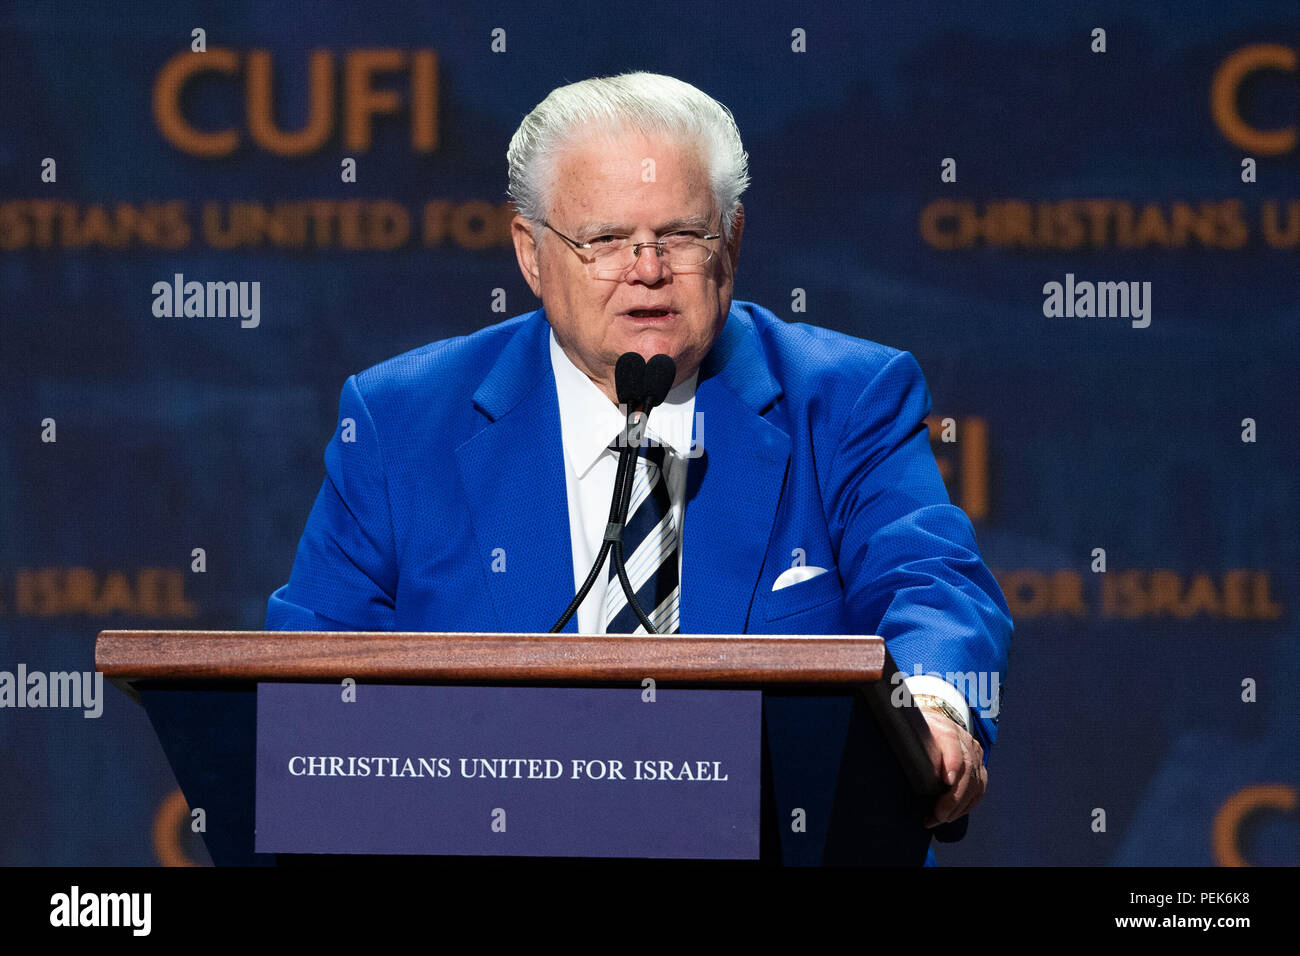 Pastor John Hagee, CUFI founder and Chairman, speaking at